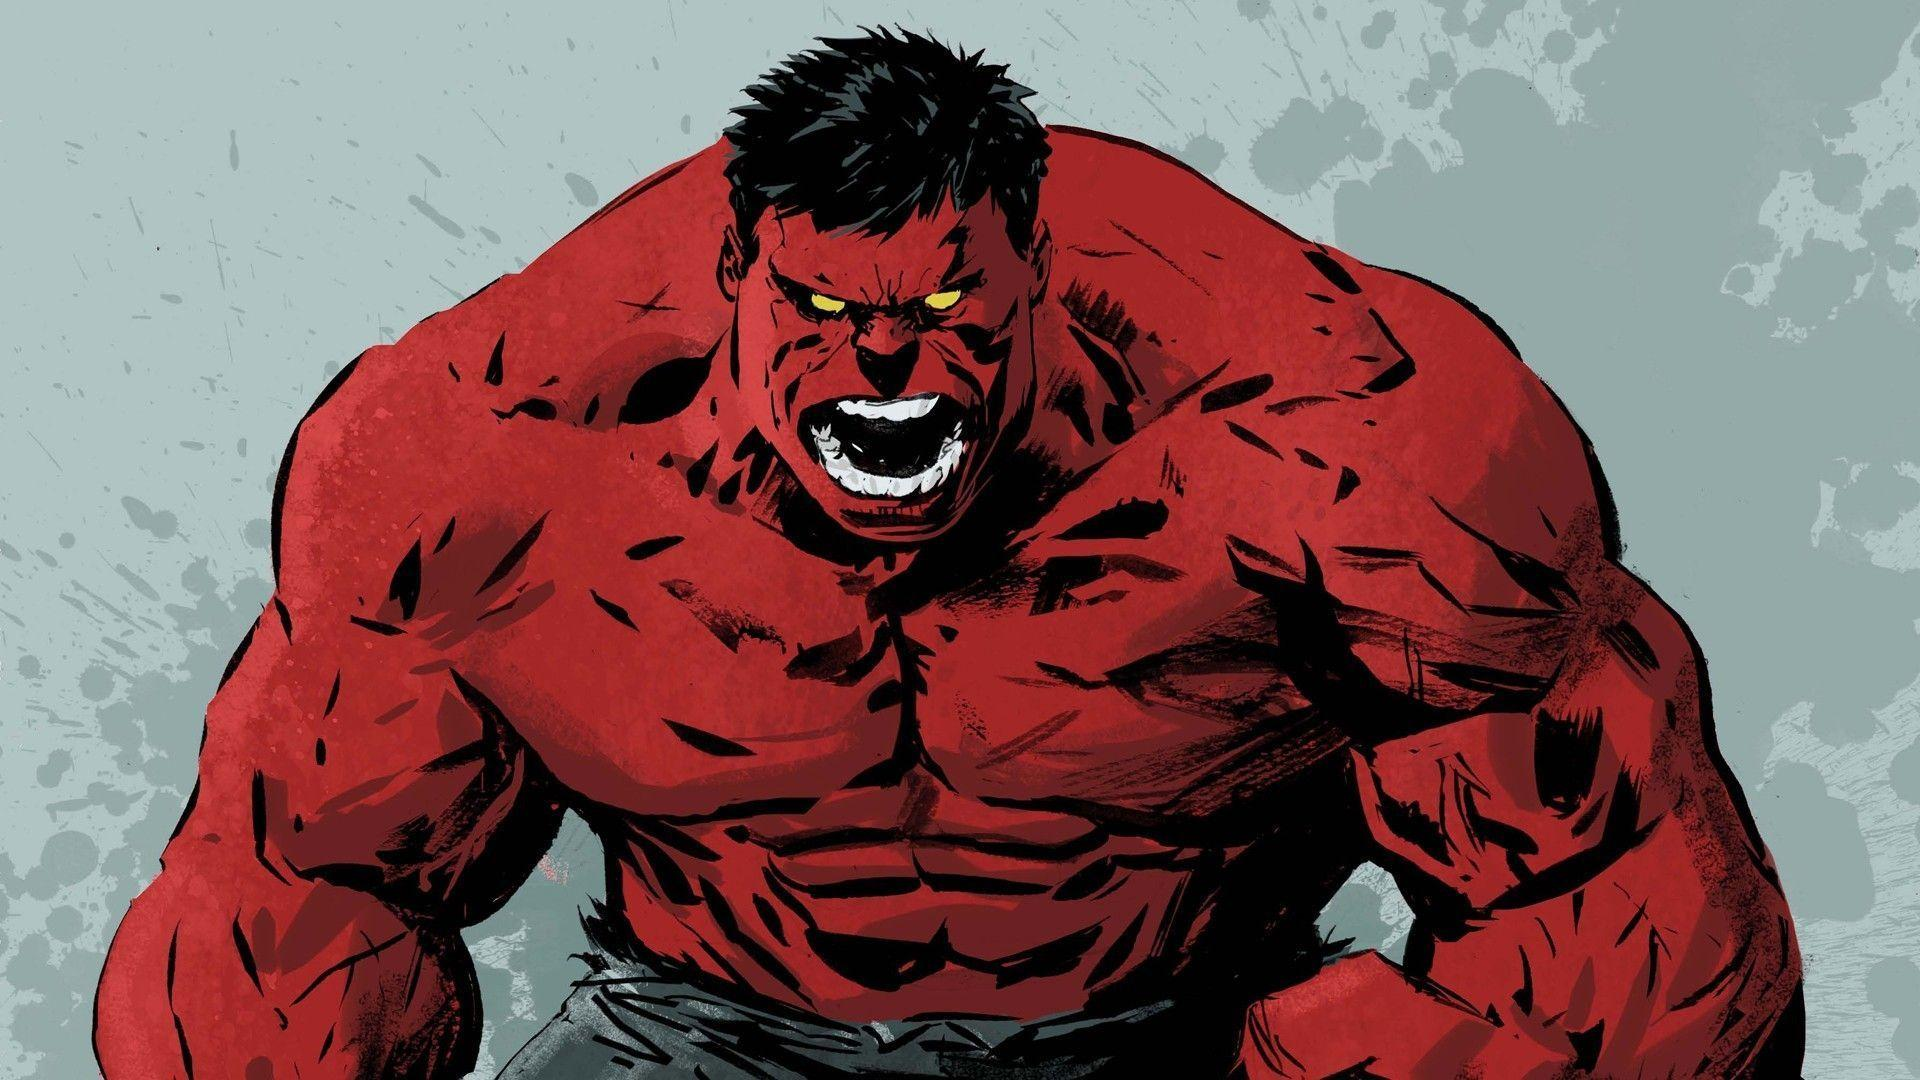 Red Hulk Wallpapers 1920x1080